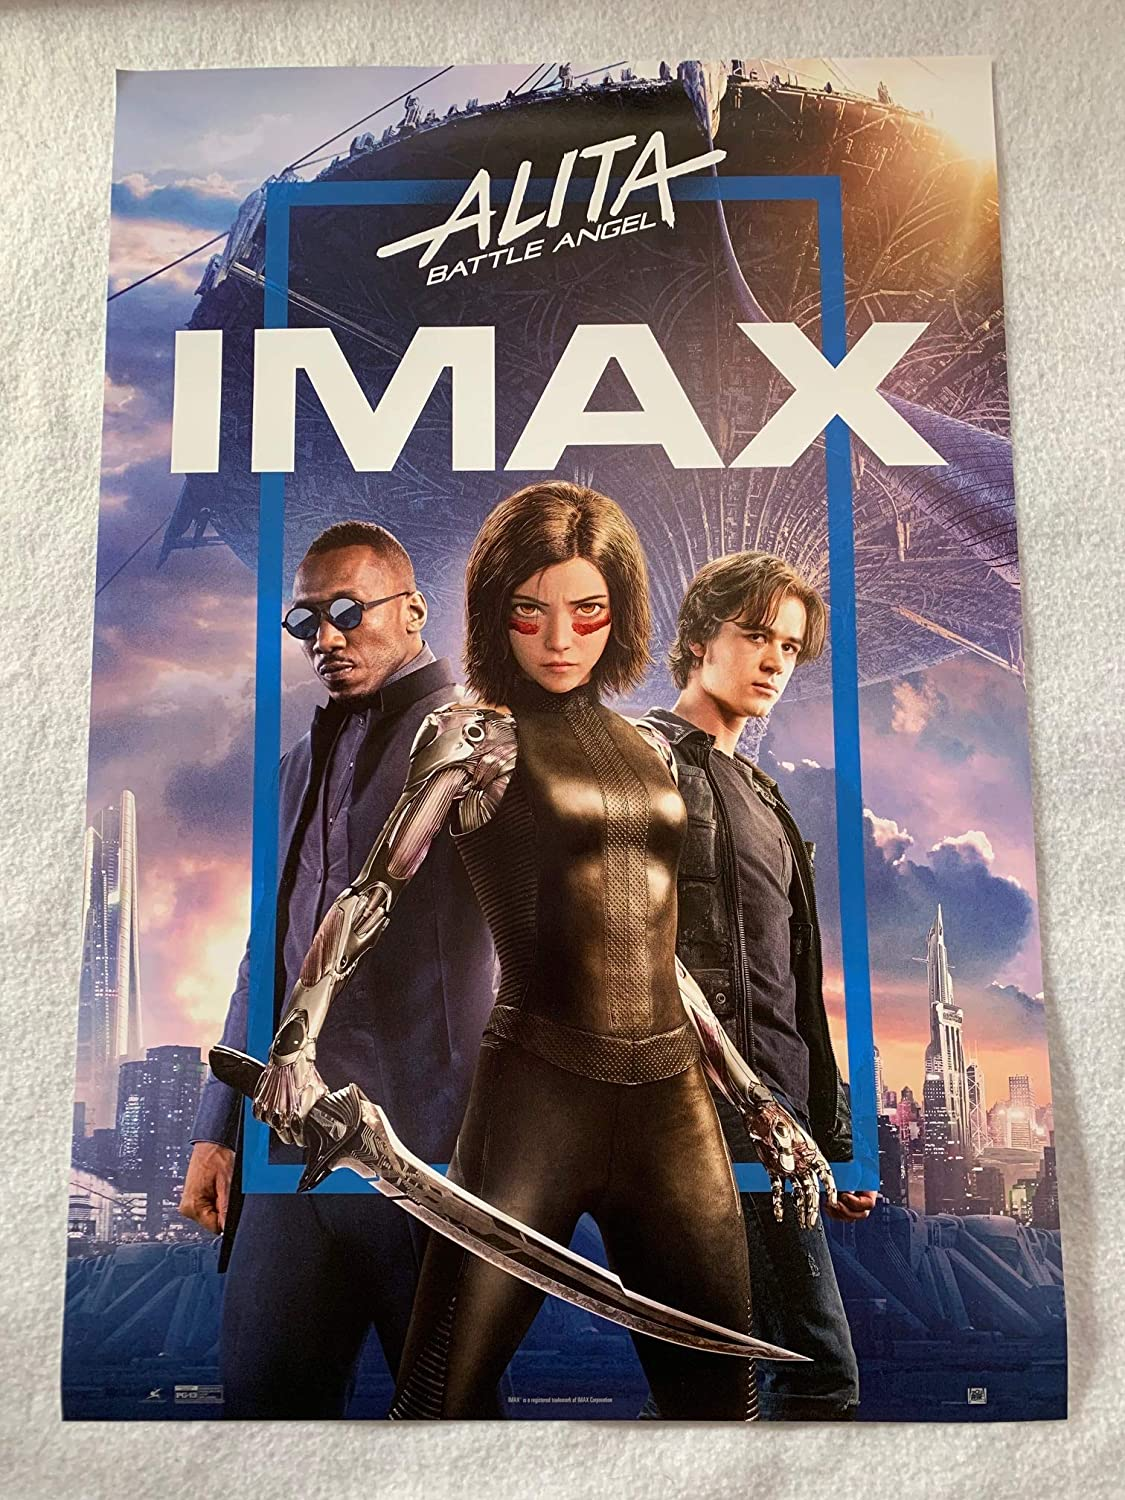 Alita Battle Angel 13 X19 Original Promo Movie Poster Imax 2019 At Amazon S Entertainment Collectibles Store